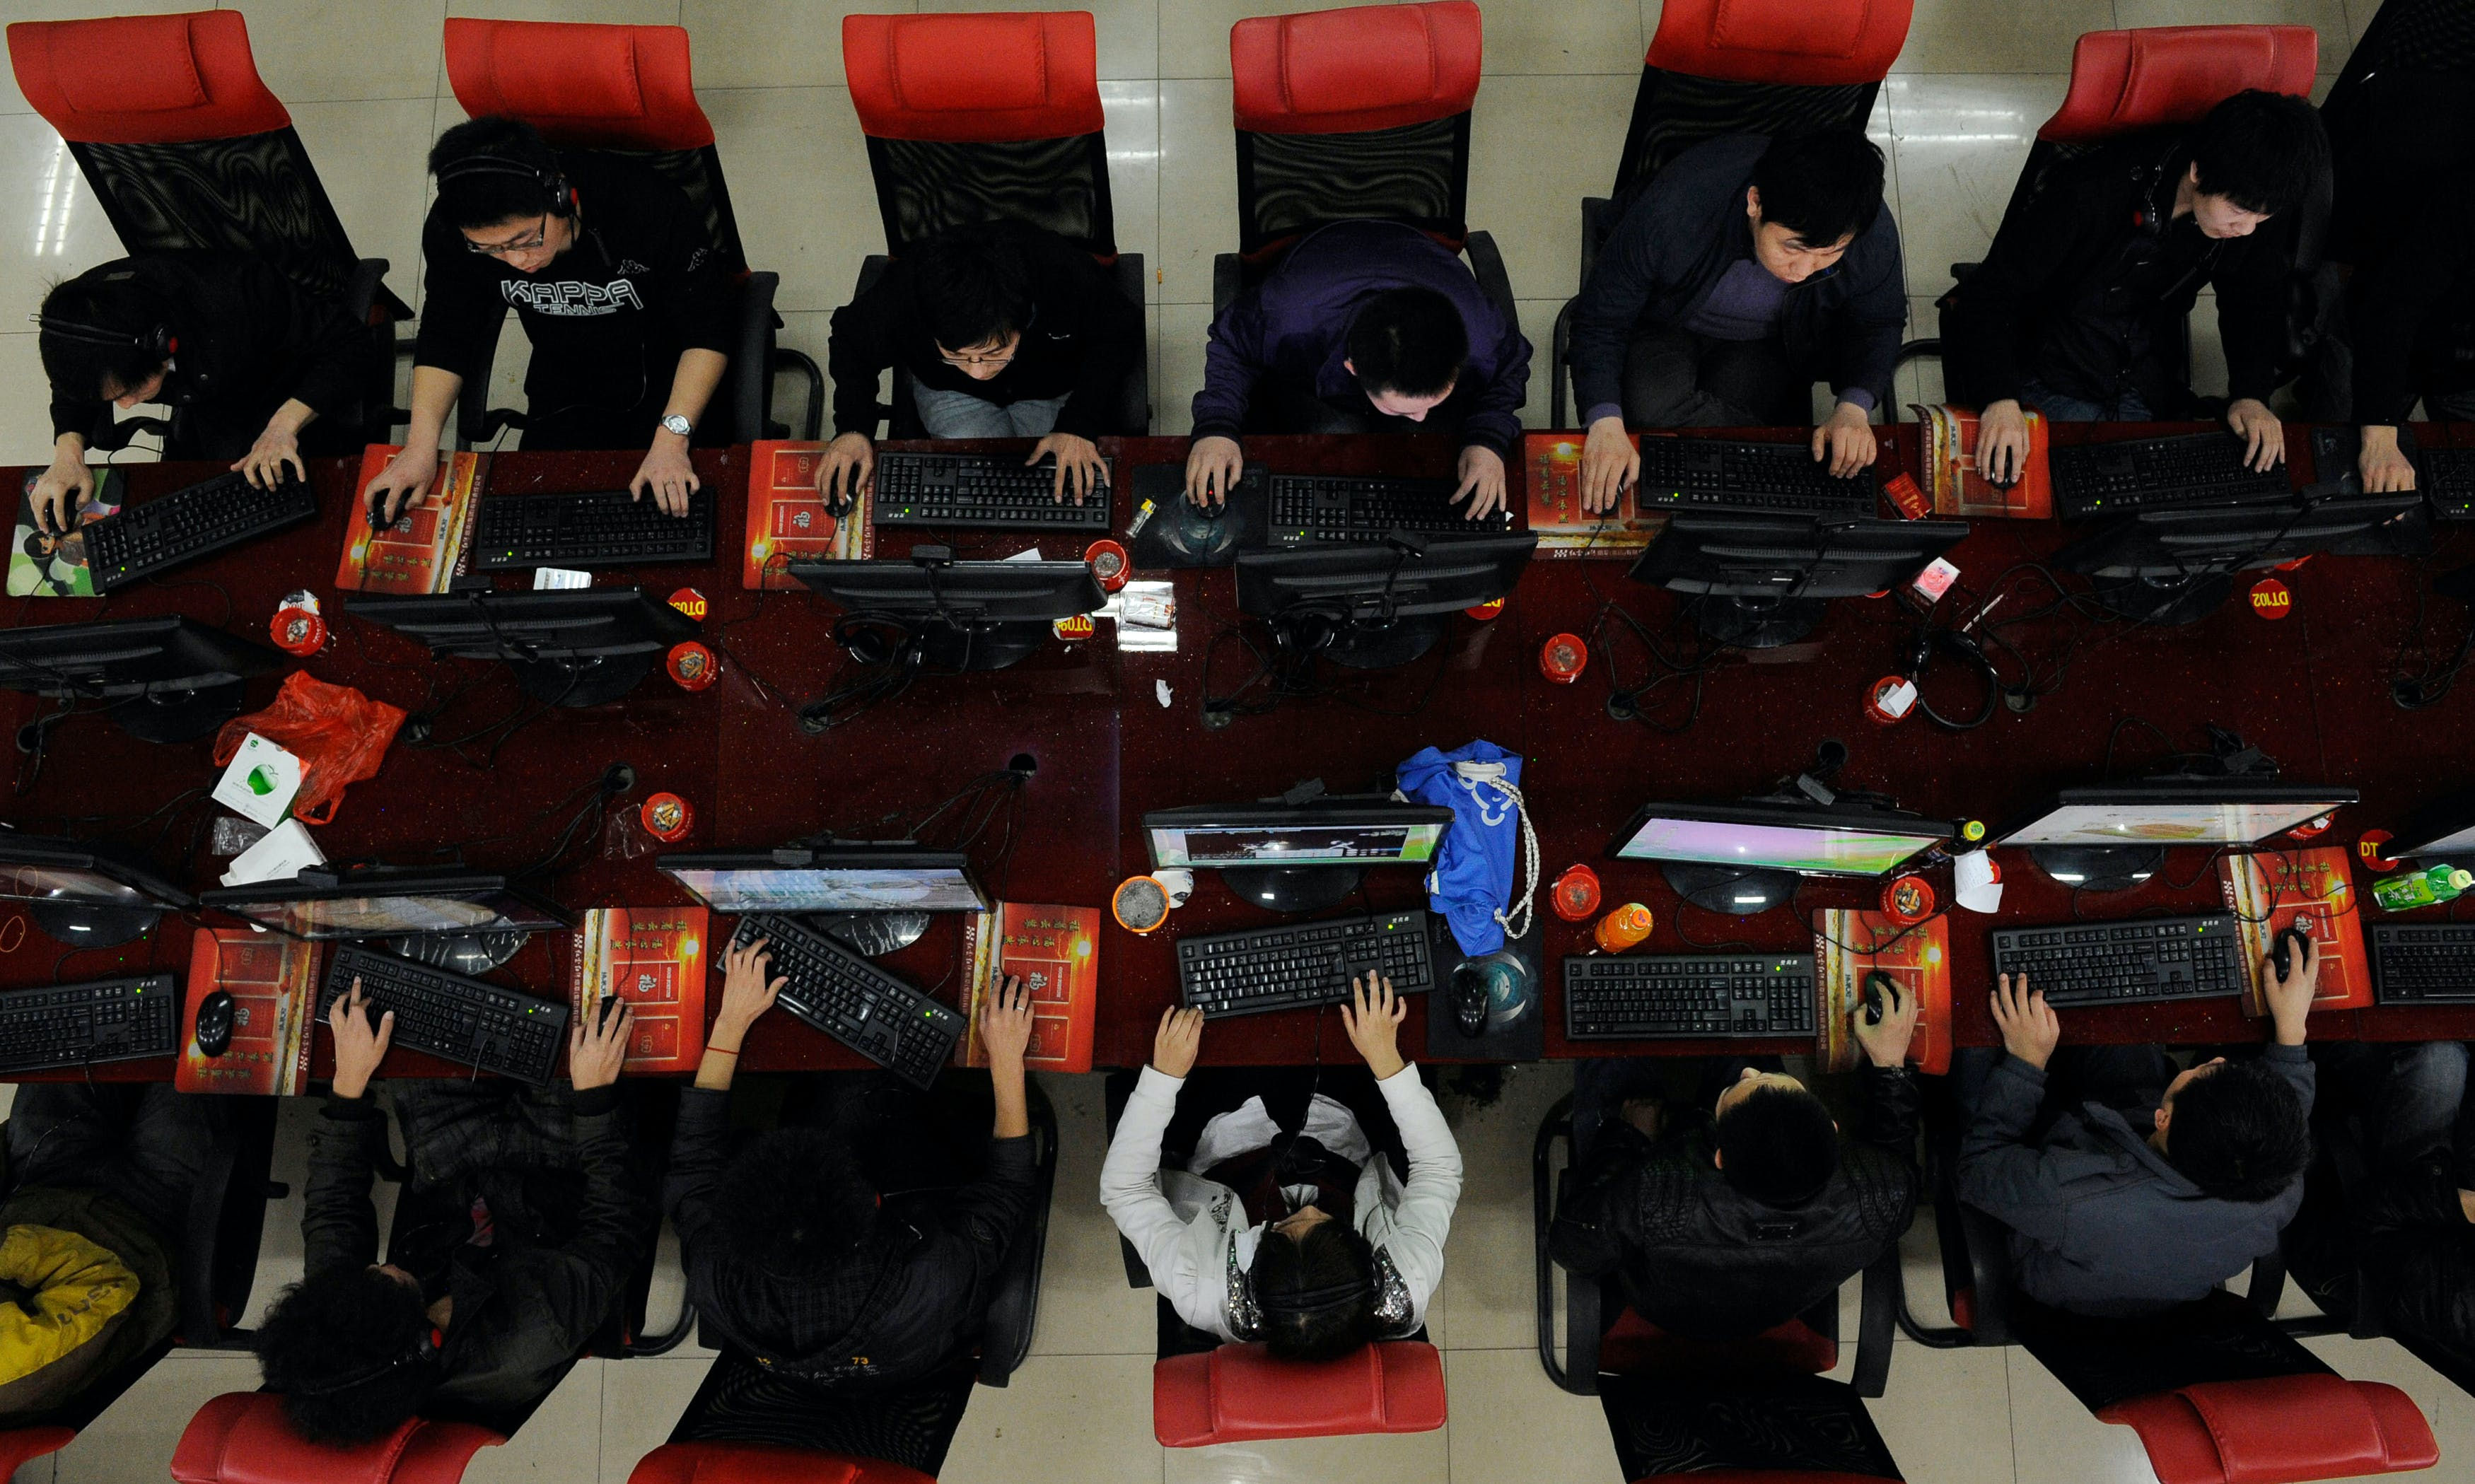 Chinese Internet Users React After Authorities Target Citizens for Using VPNs